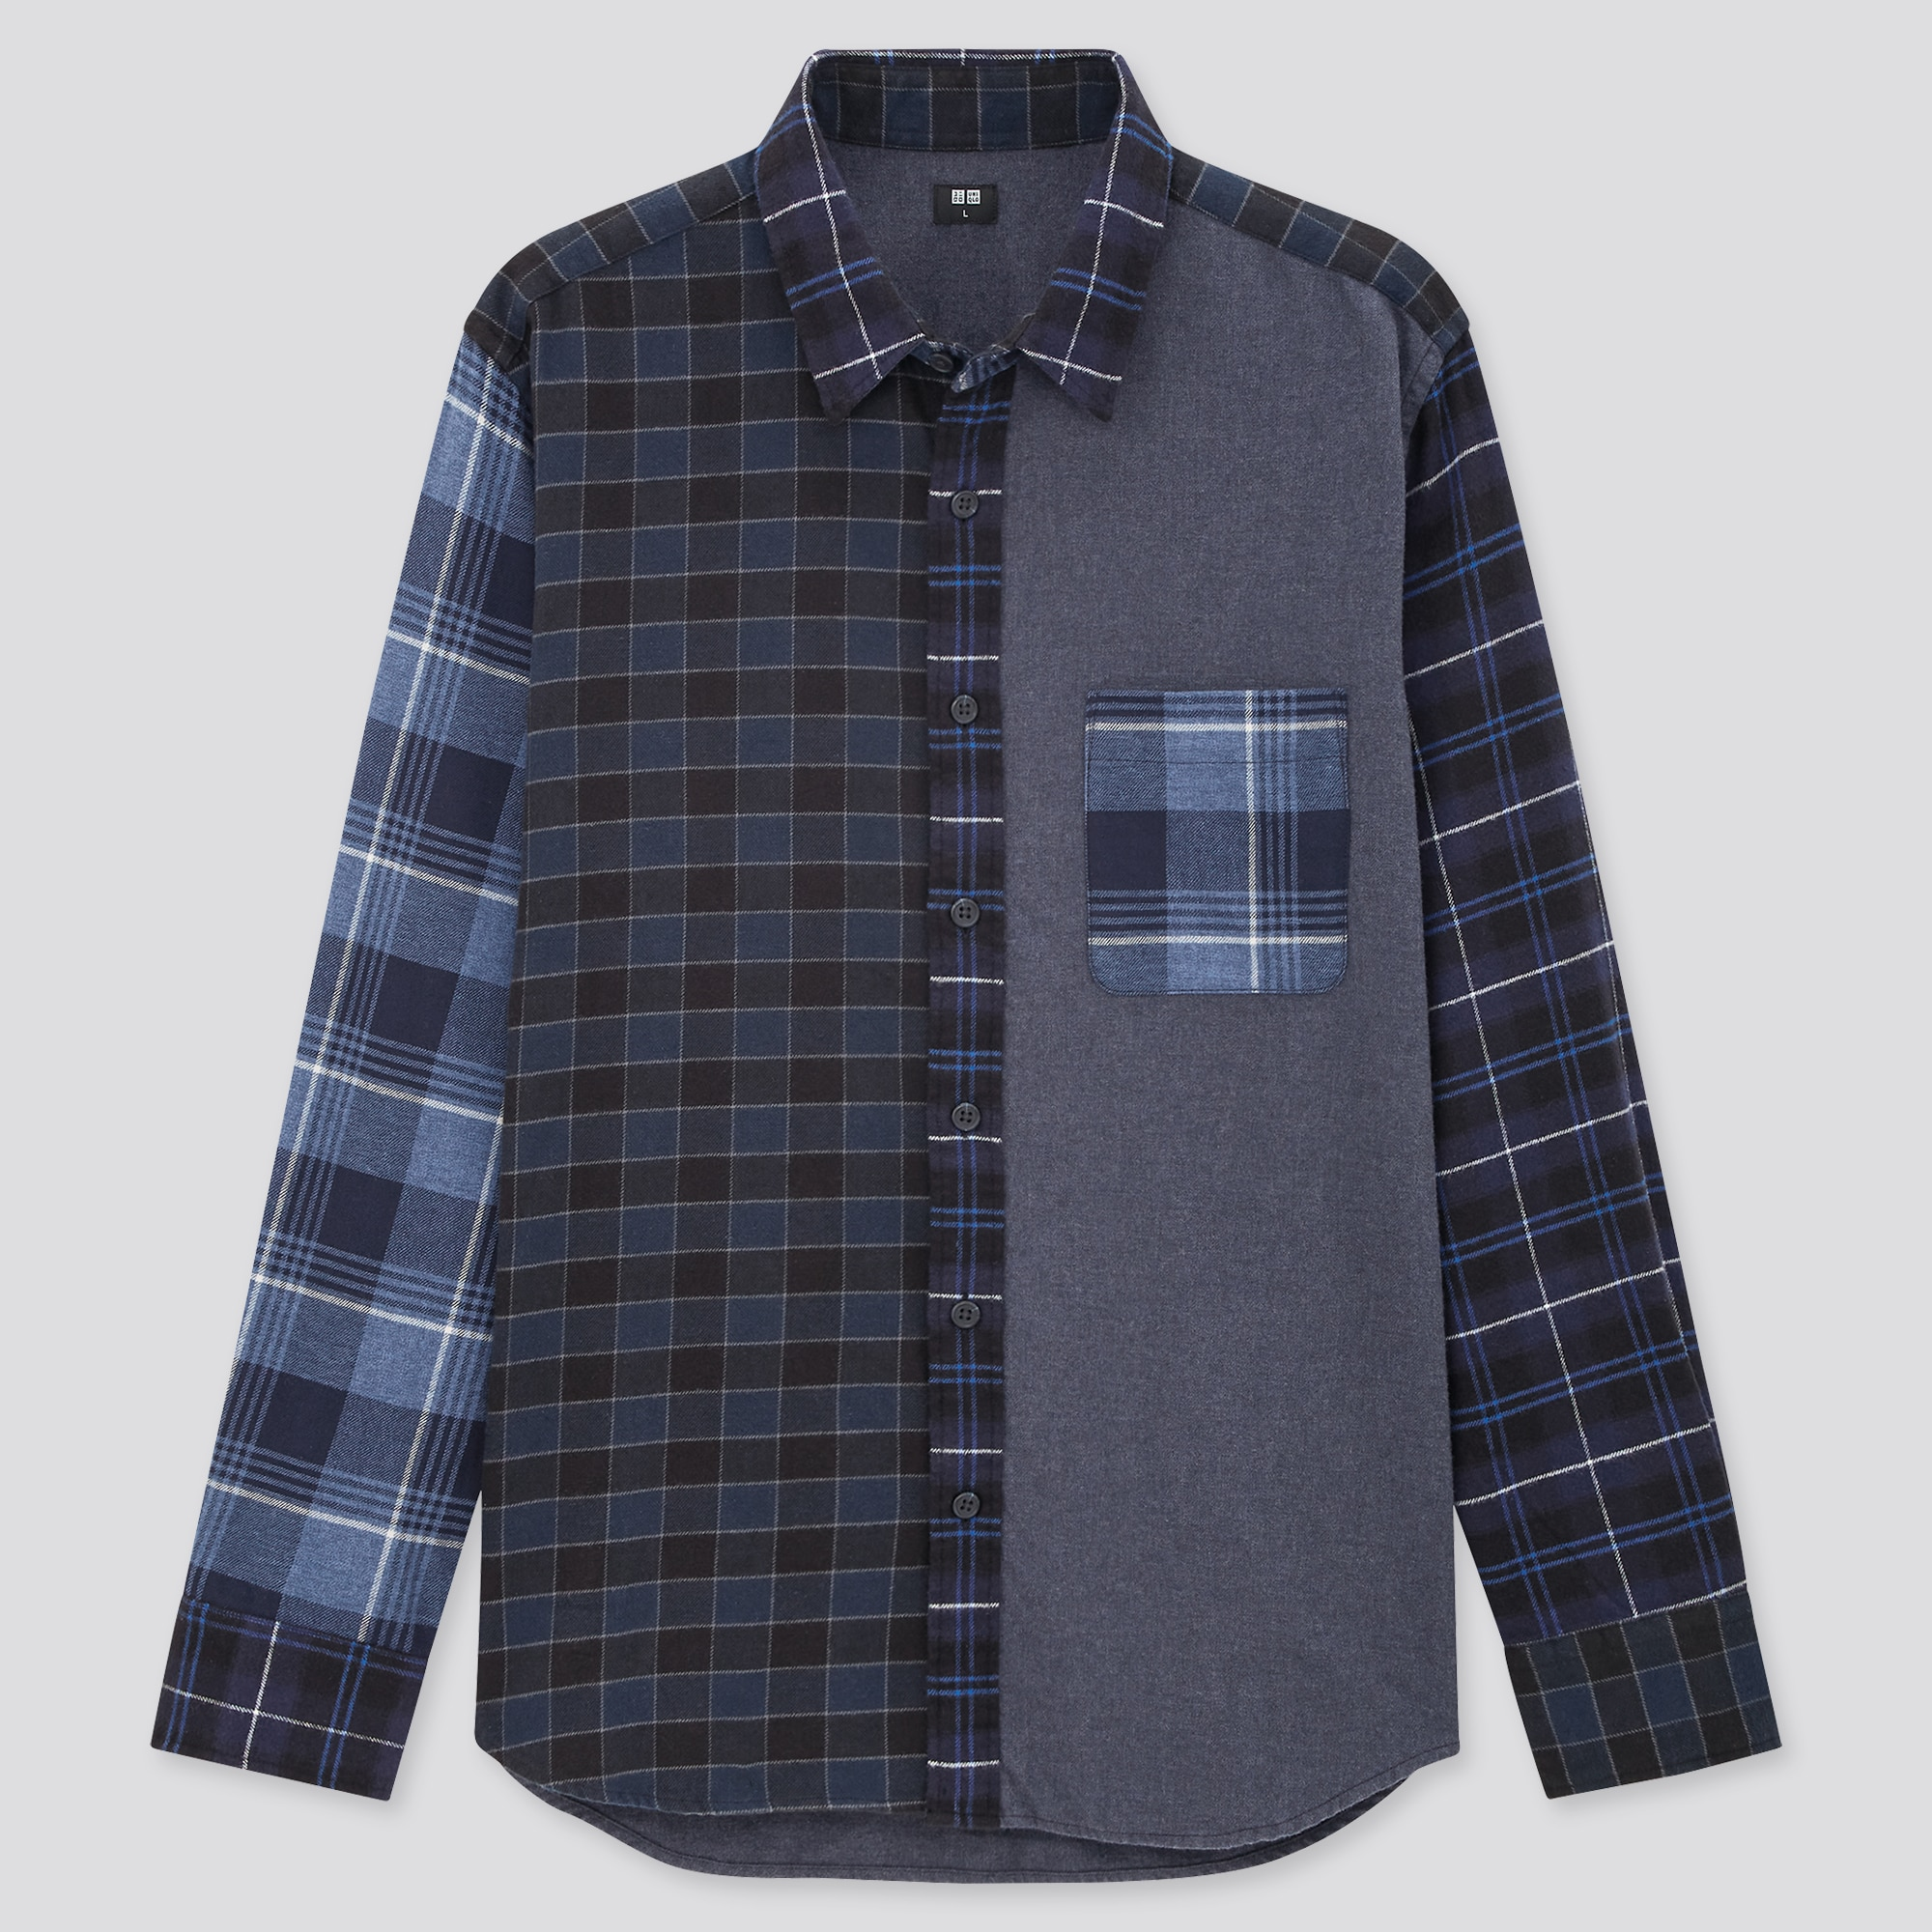 Uniqlo MEN FLANNEL CHECKED LONG-SLEEVE SHIRT